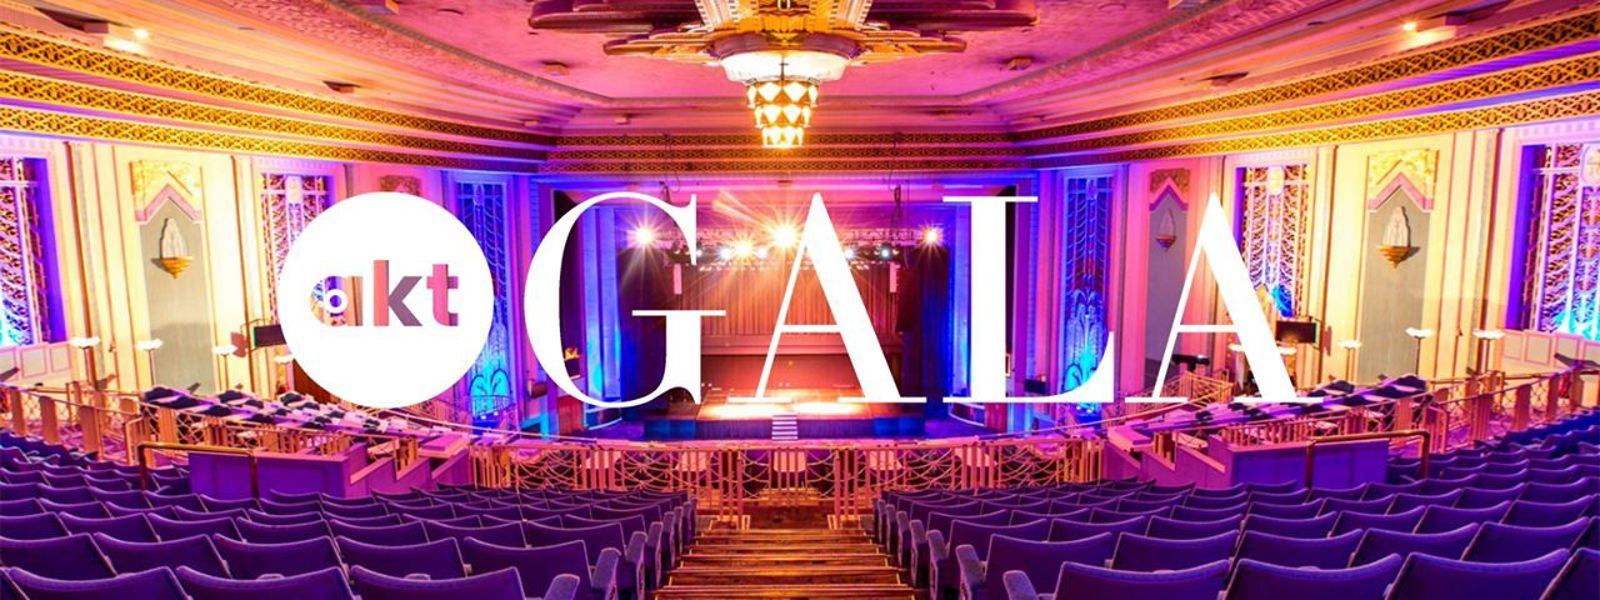 akt Gala: Explore the venue